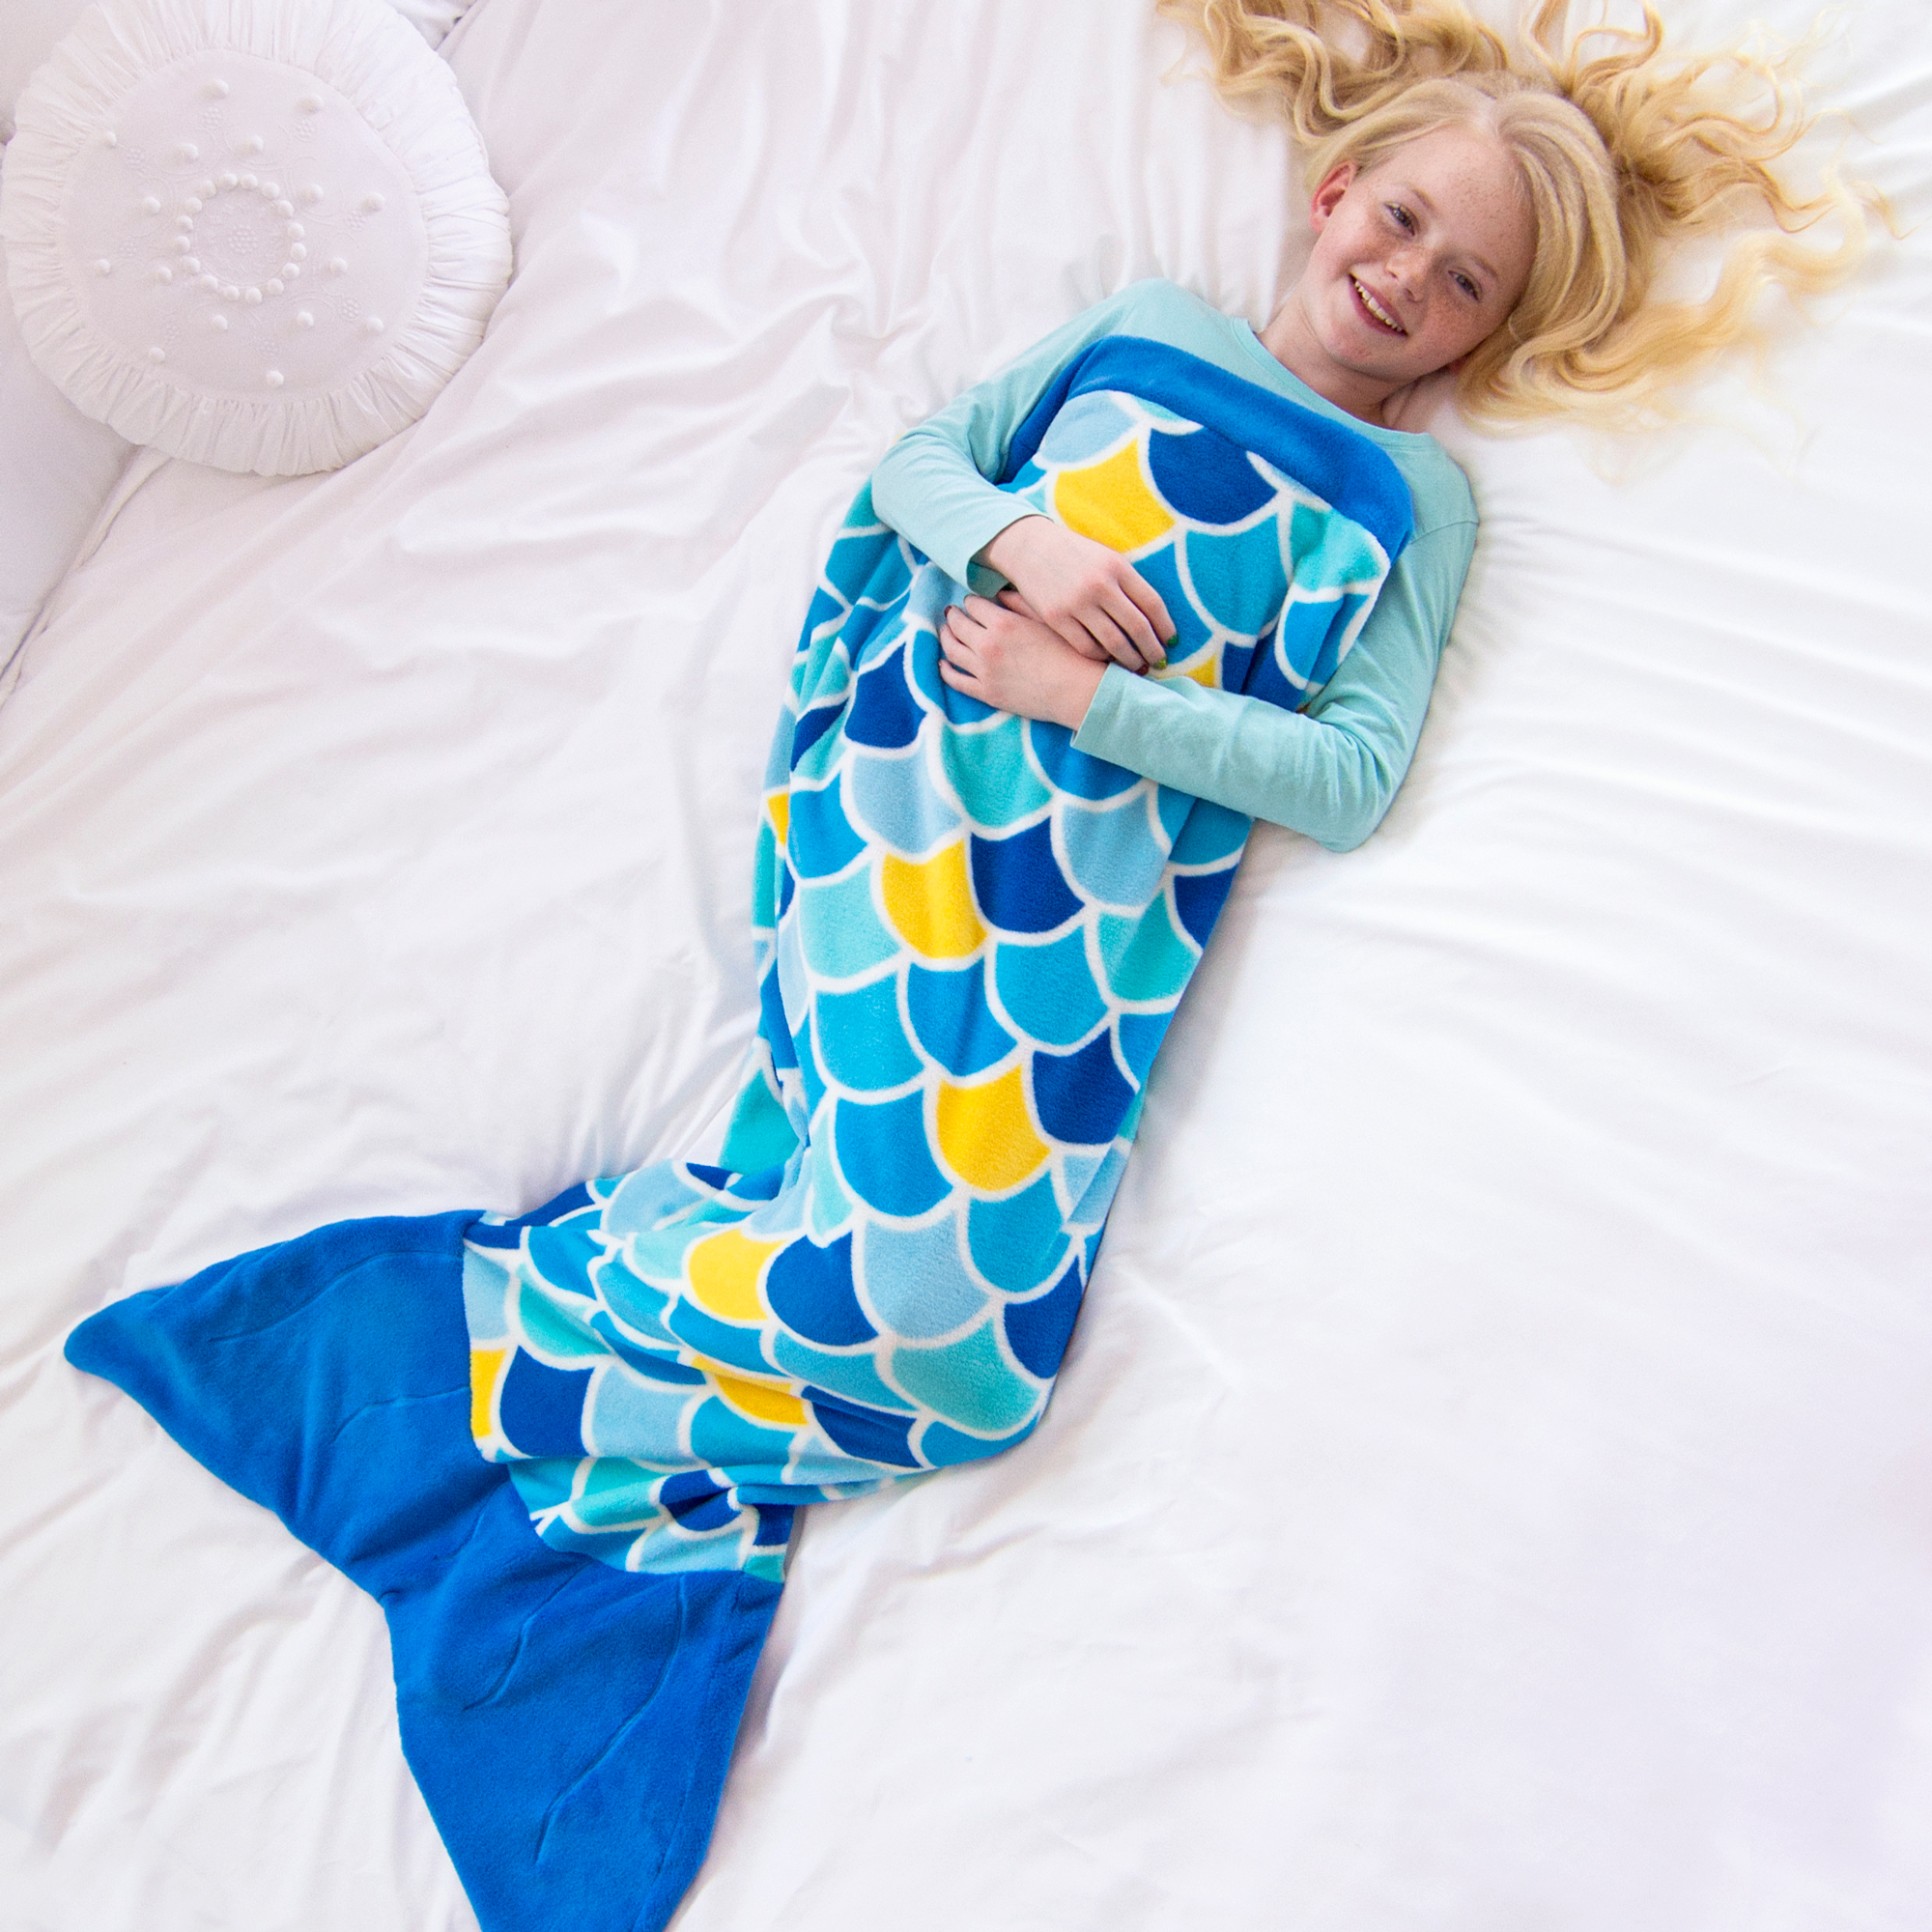 Cuddle Tails Super Soft Mermaid Tail Blankets for imaginative play in Kids and Adult Sizes by Fin Fun